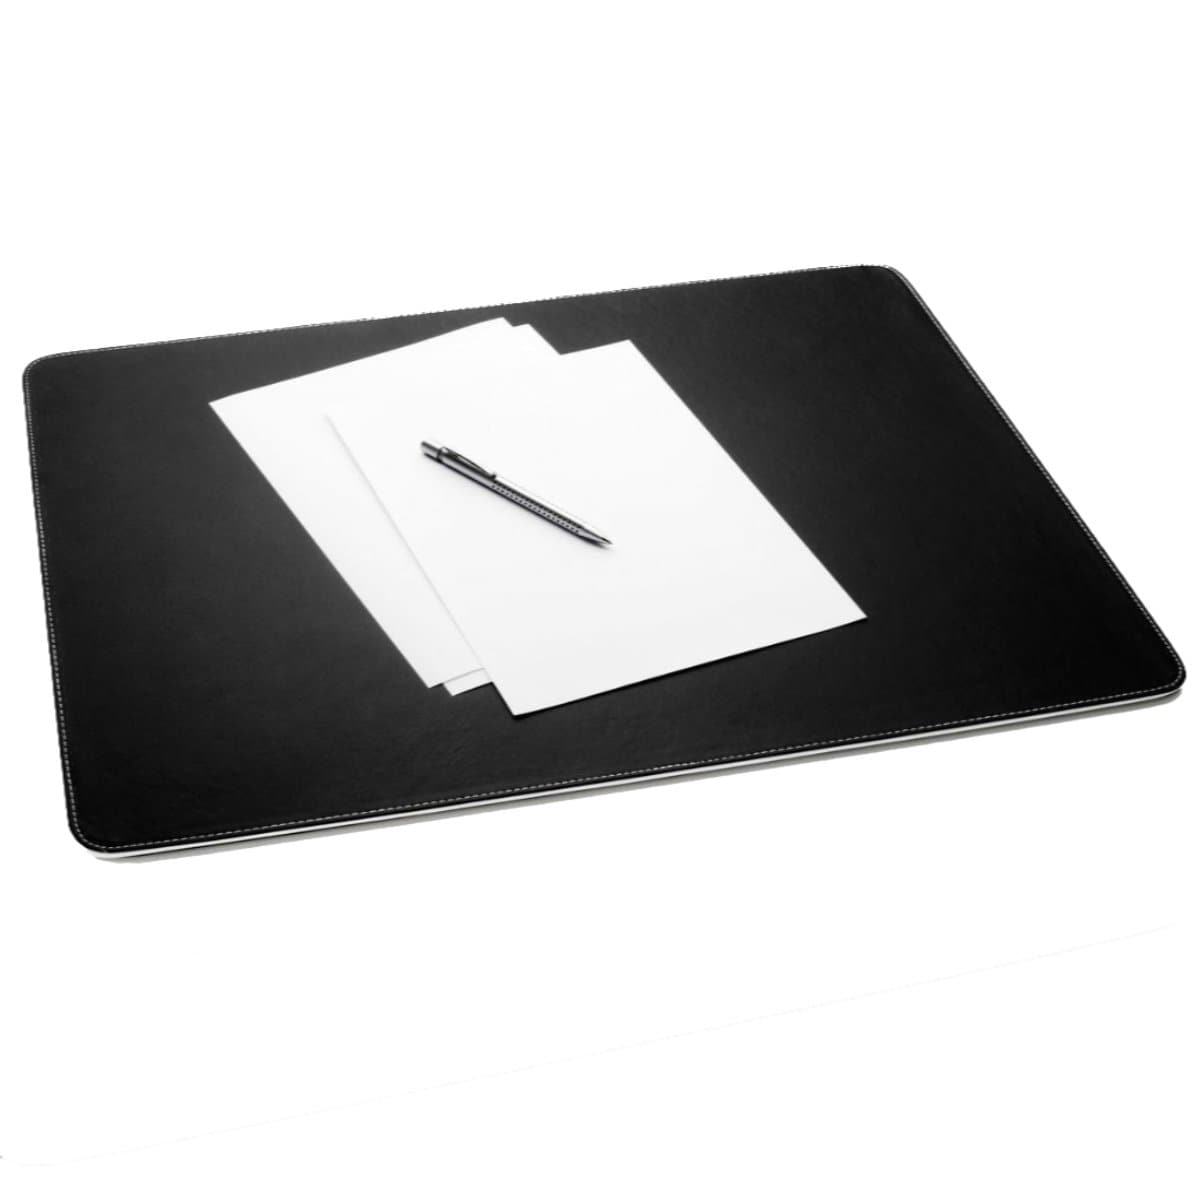 Sigel EYESTYLE Desk Pad, 60 x 0.6 x 45 cm, Black with White padding and stitching